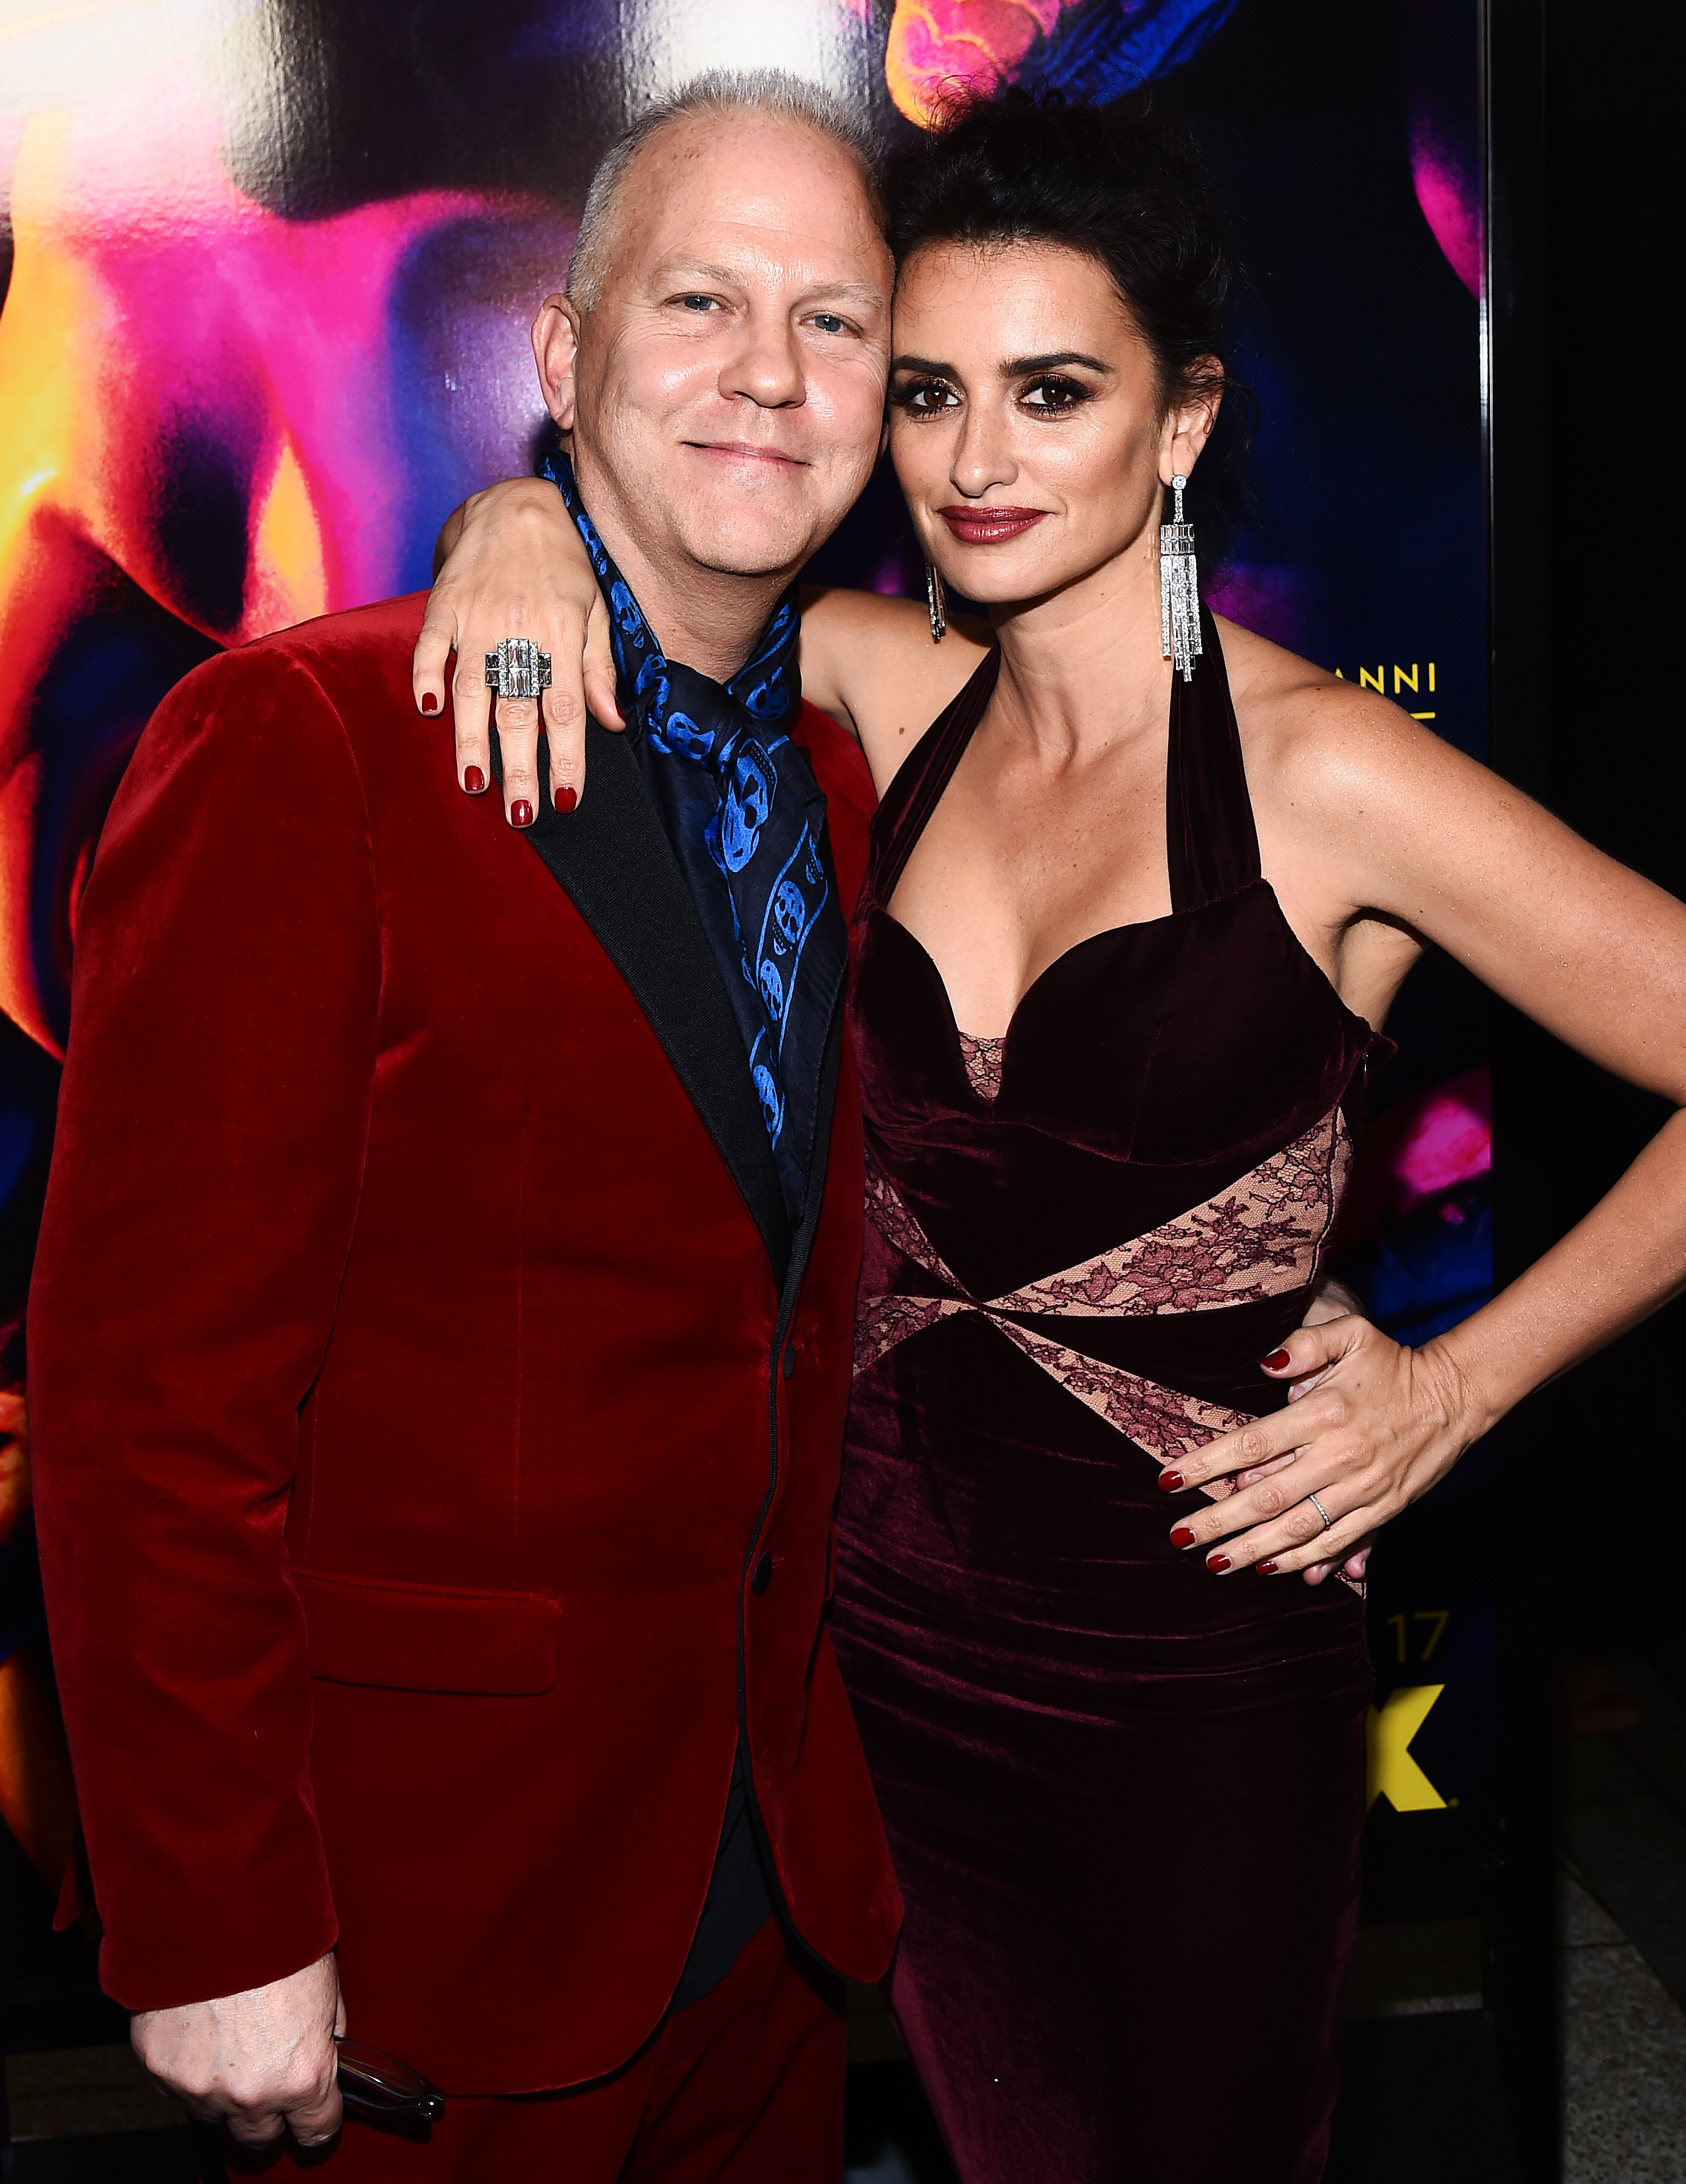 Ryan Murphy and Penelope Cruz'The Assassination of Gianni Versace: American Crime Story' TV show premiere, Arrivals, Los Angeles, USA - 08 Jan 2018